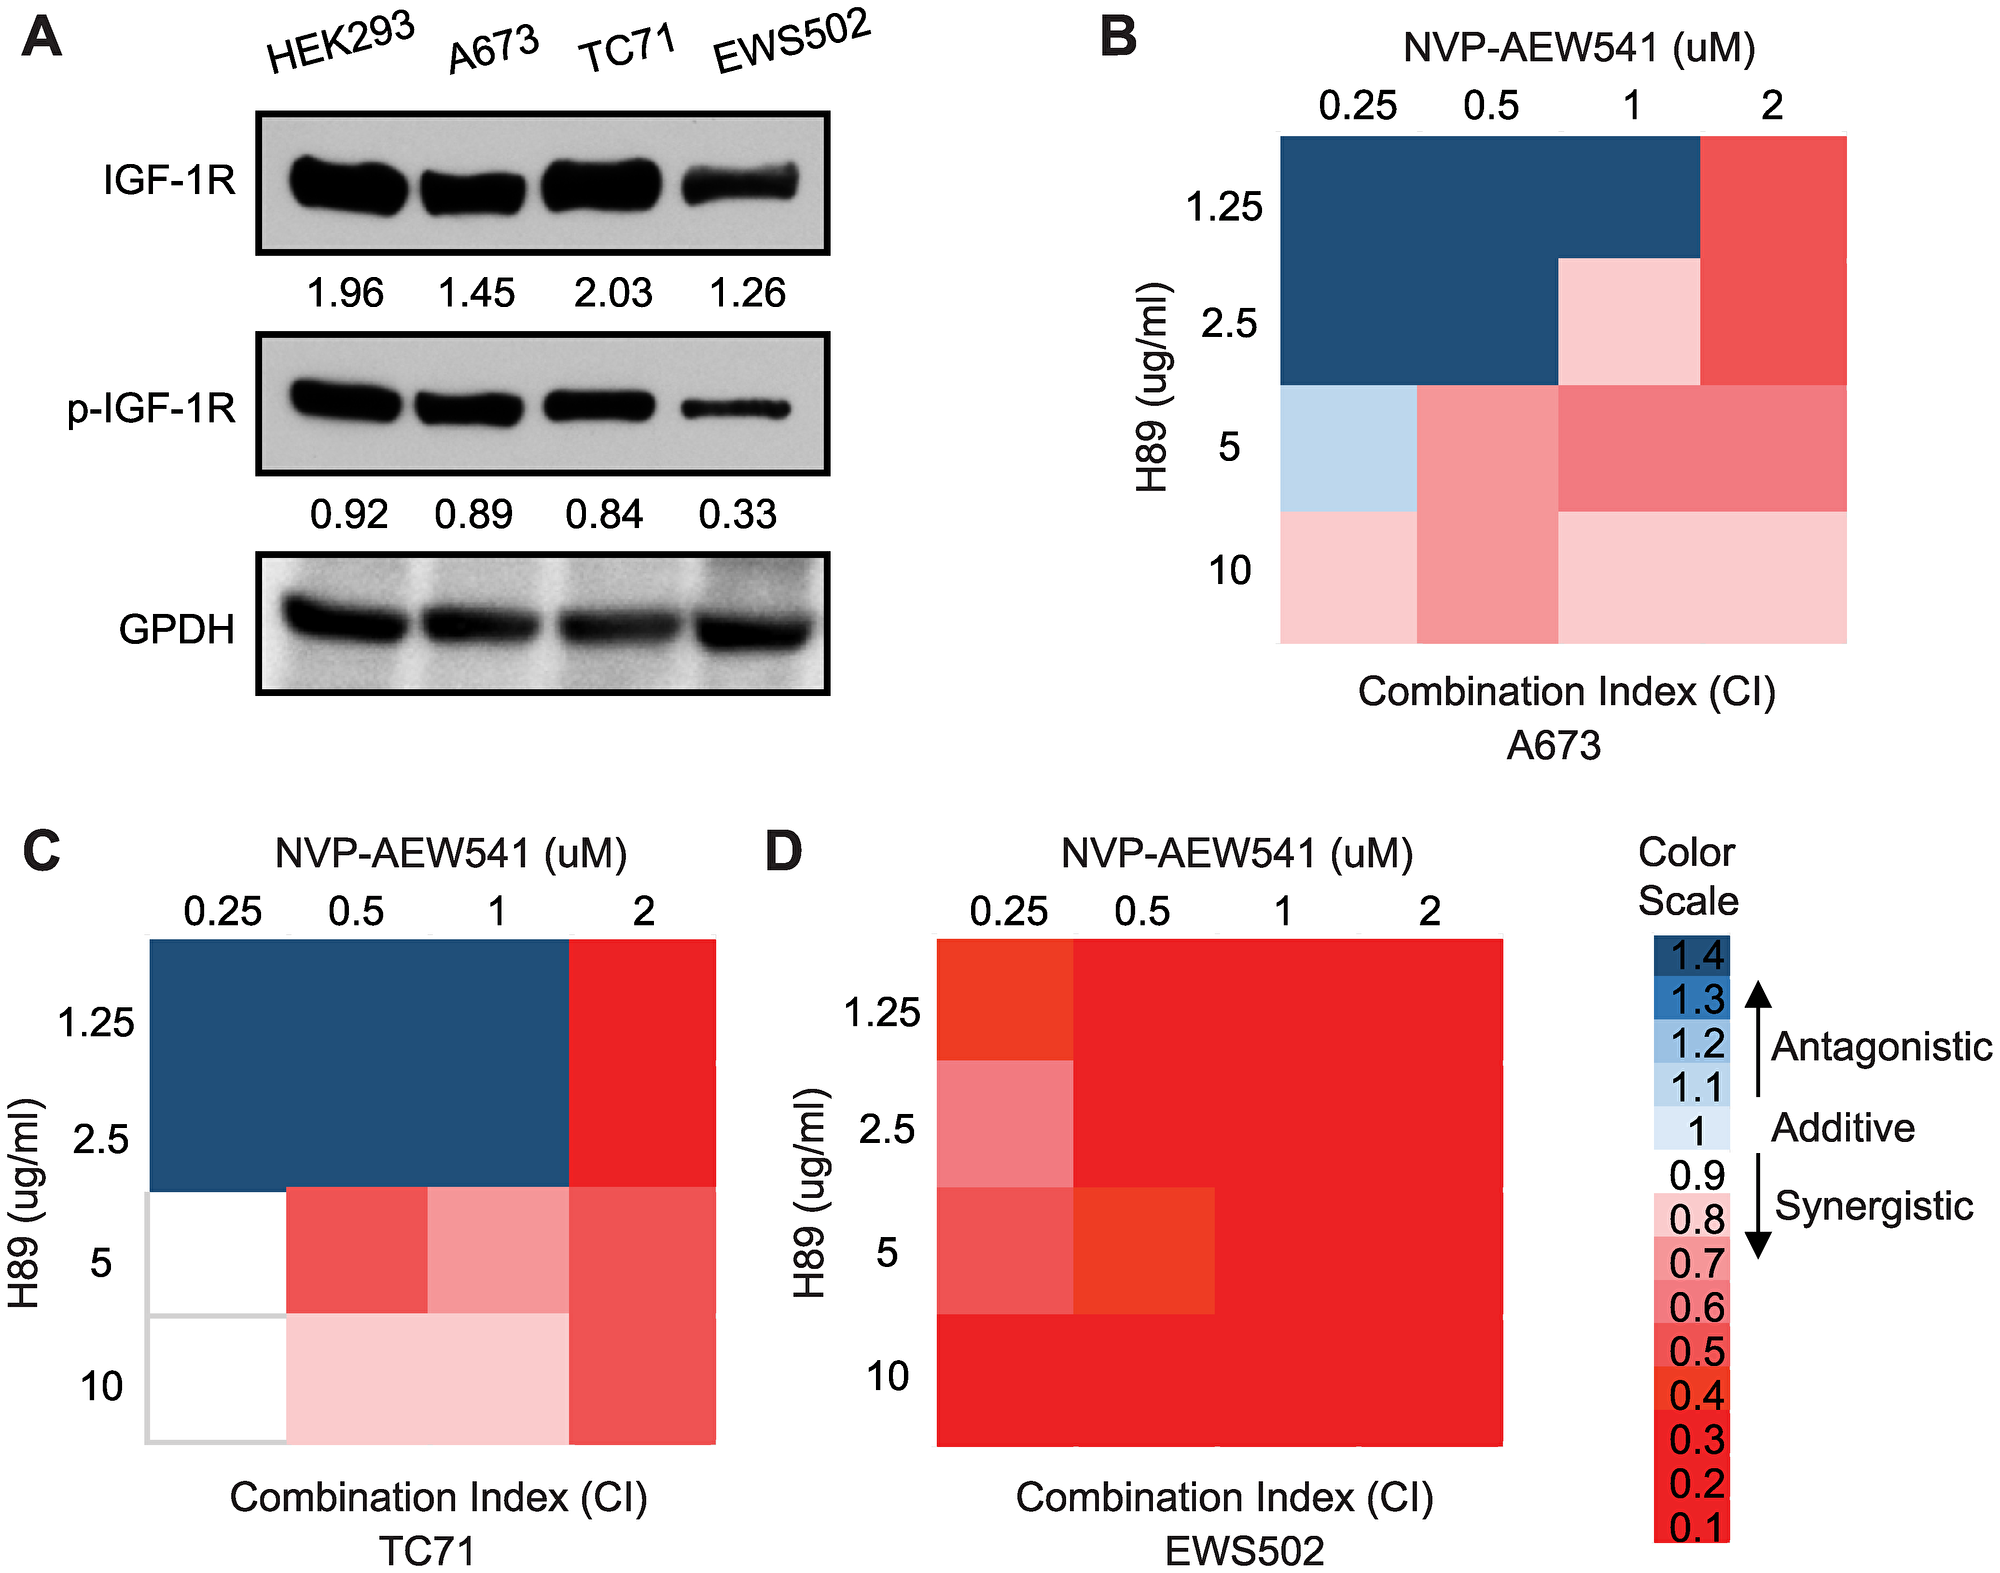 Inhibition of PPP1R1A and IGF-1R pathways synergizes in decreasing ES cell viability.